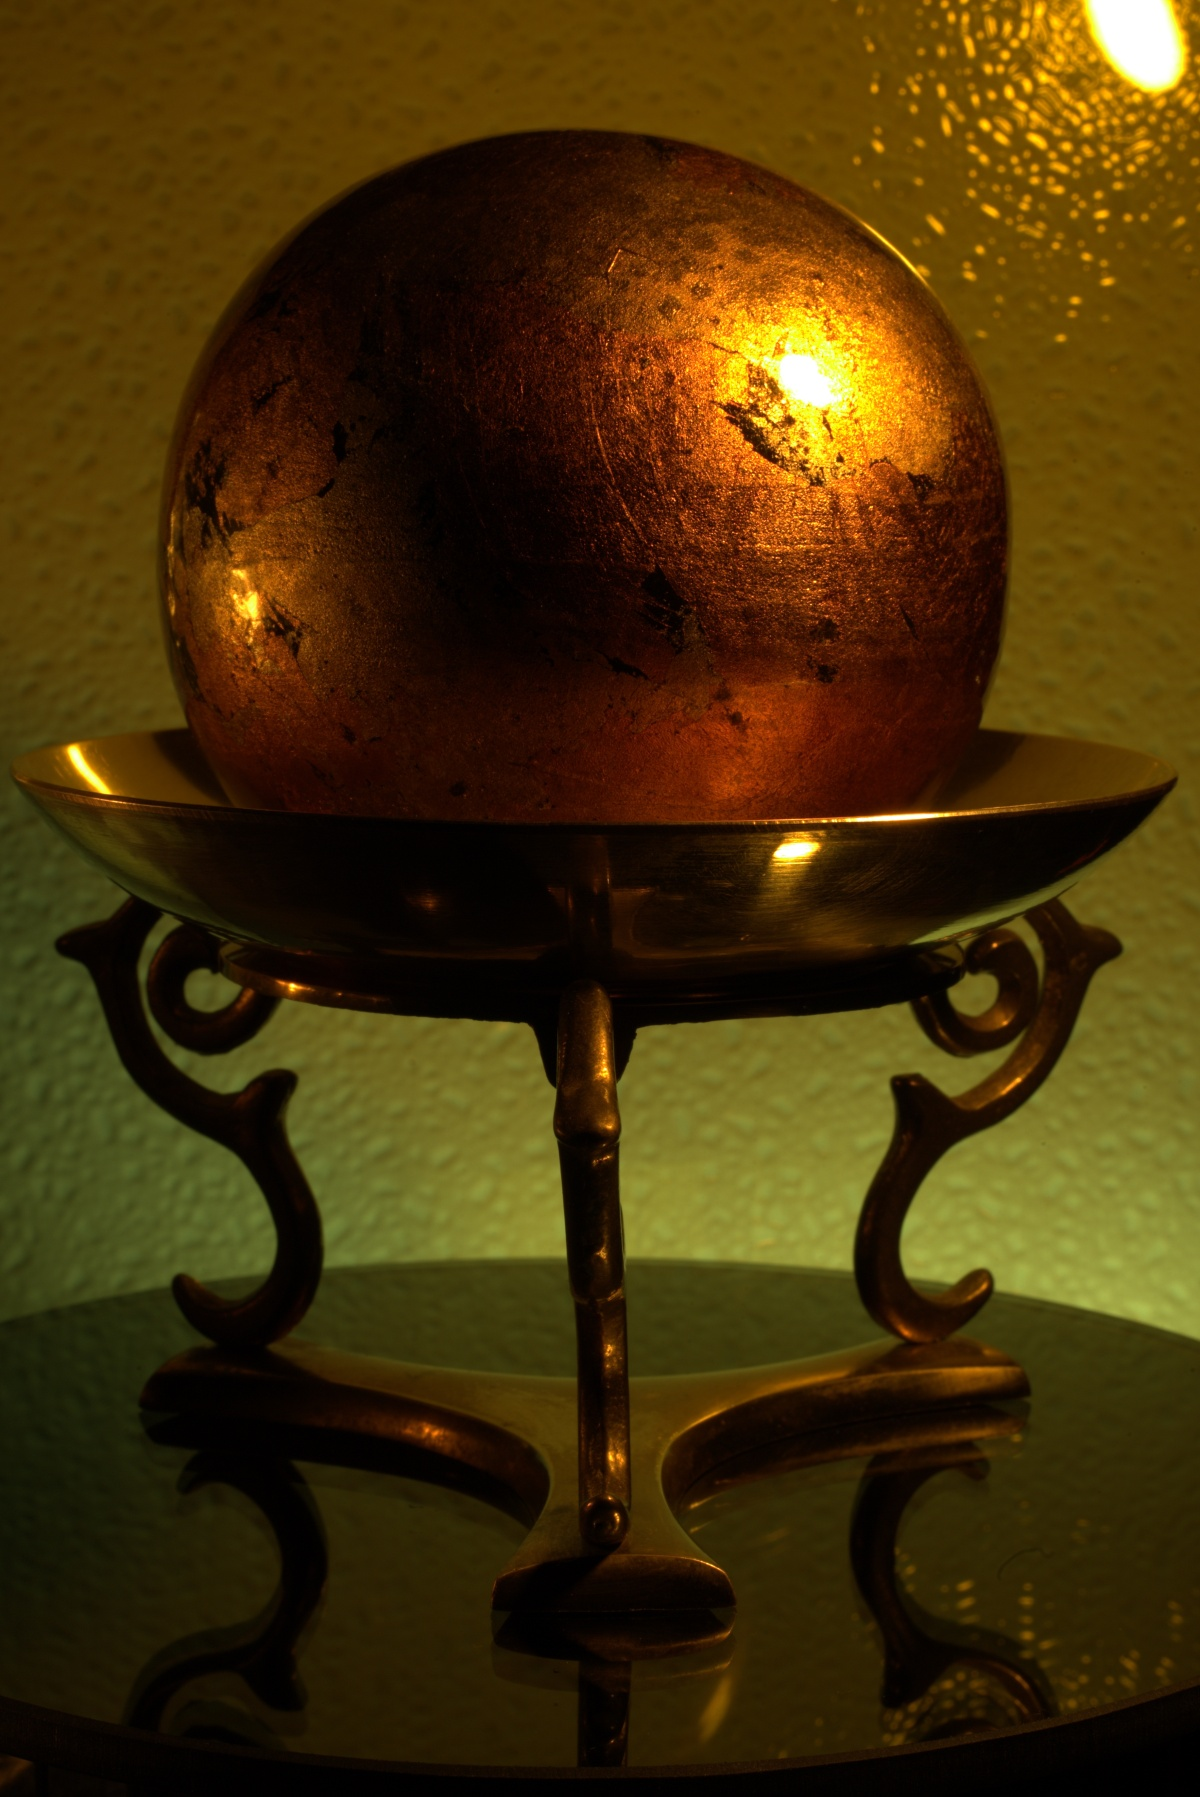 Photography ~ Photographer's Table–A Sphere in a Dish, 02/15